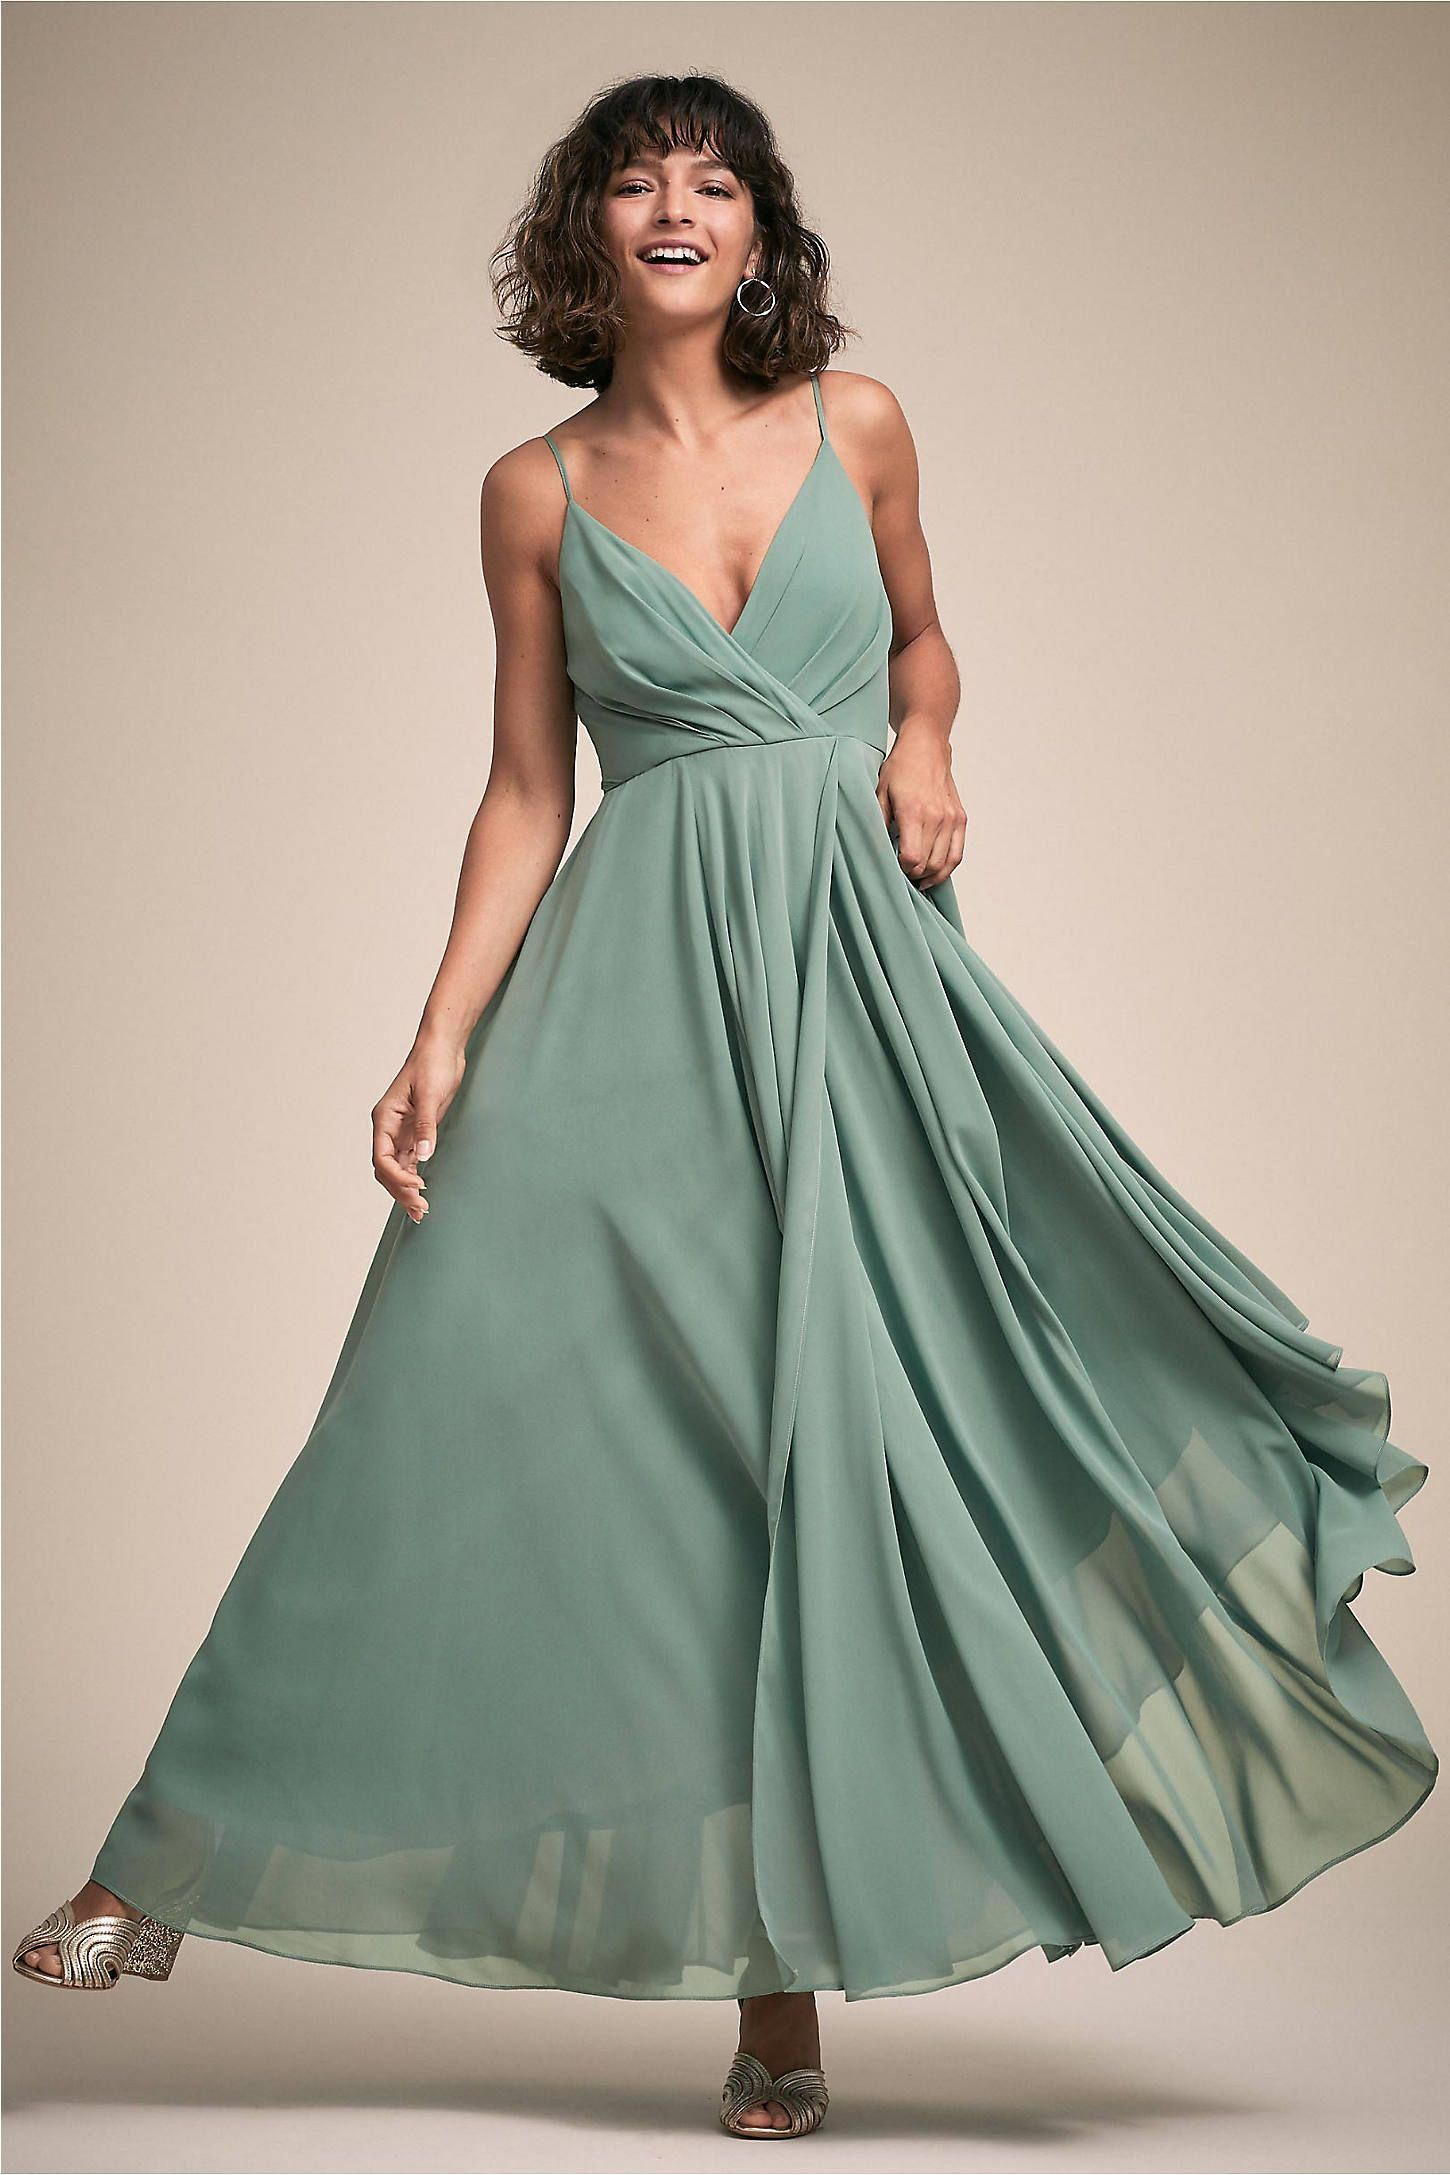 fantastic maxi dresses are readily available on our website